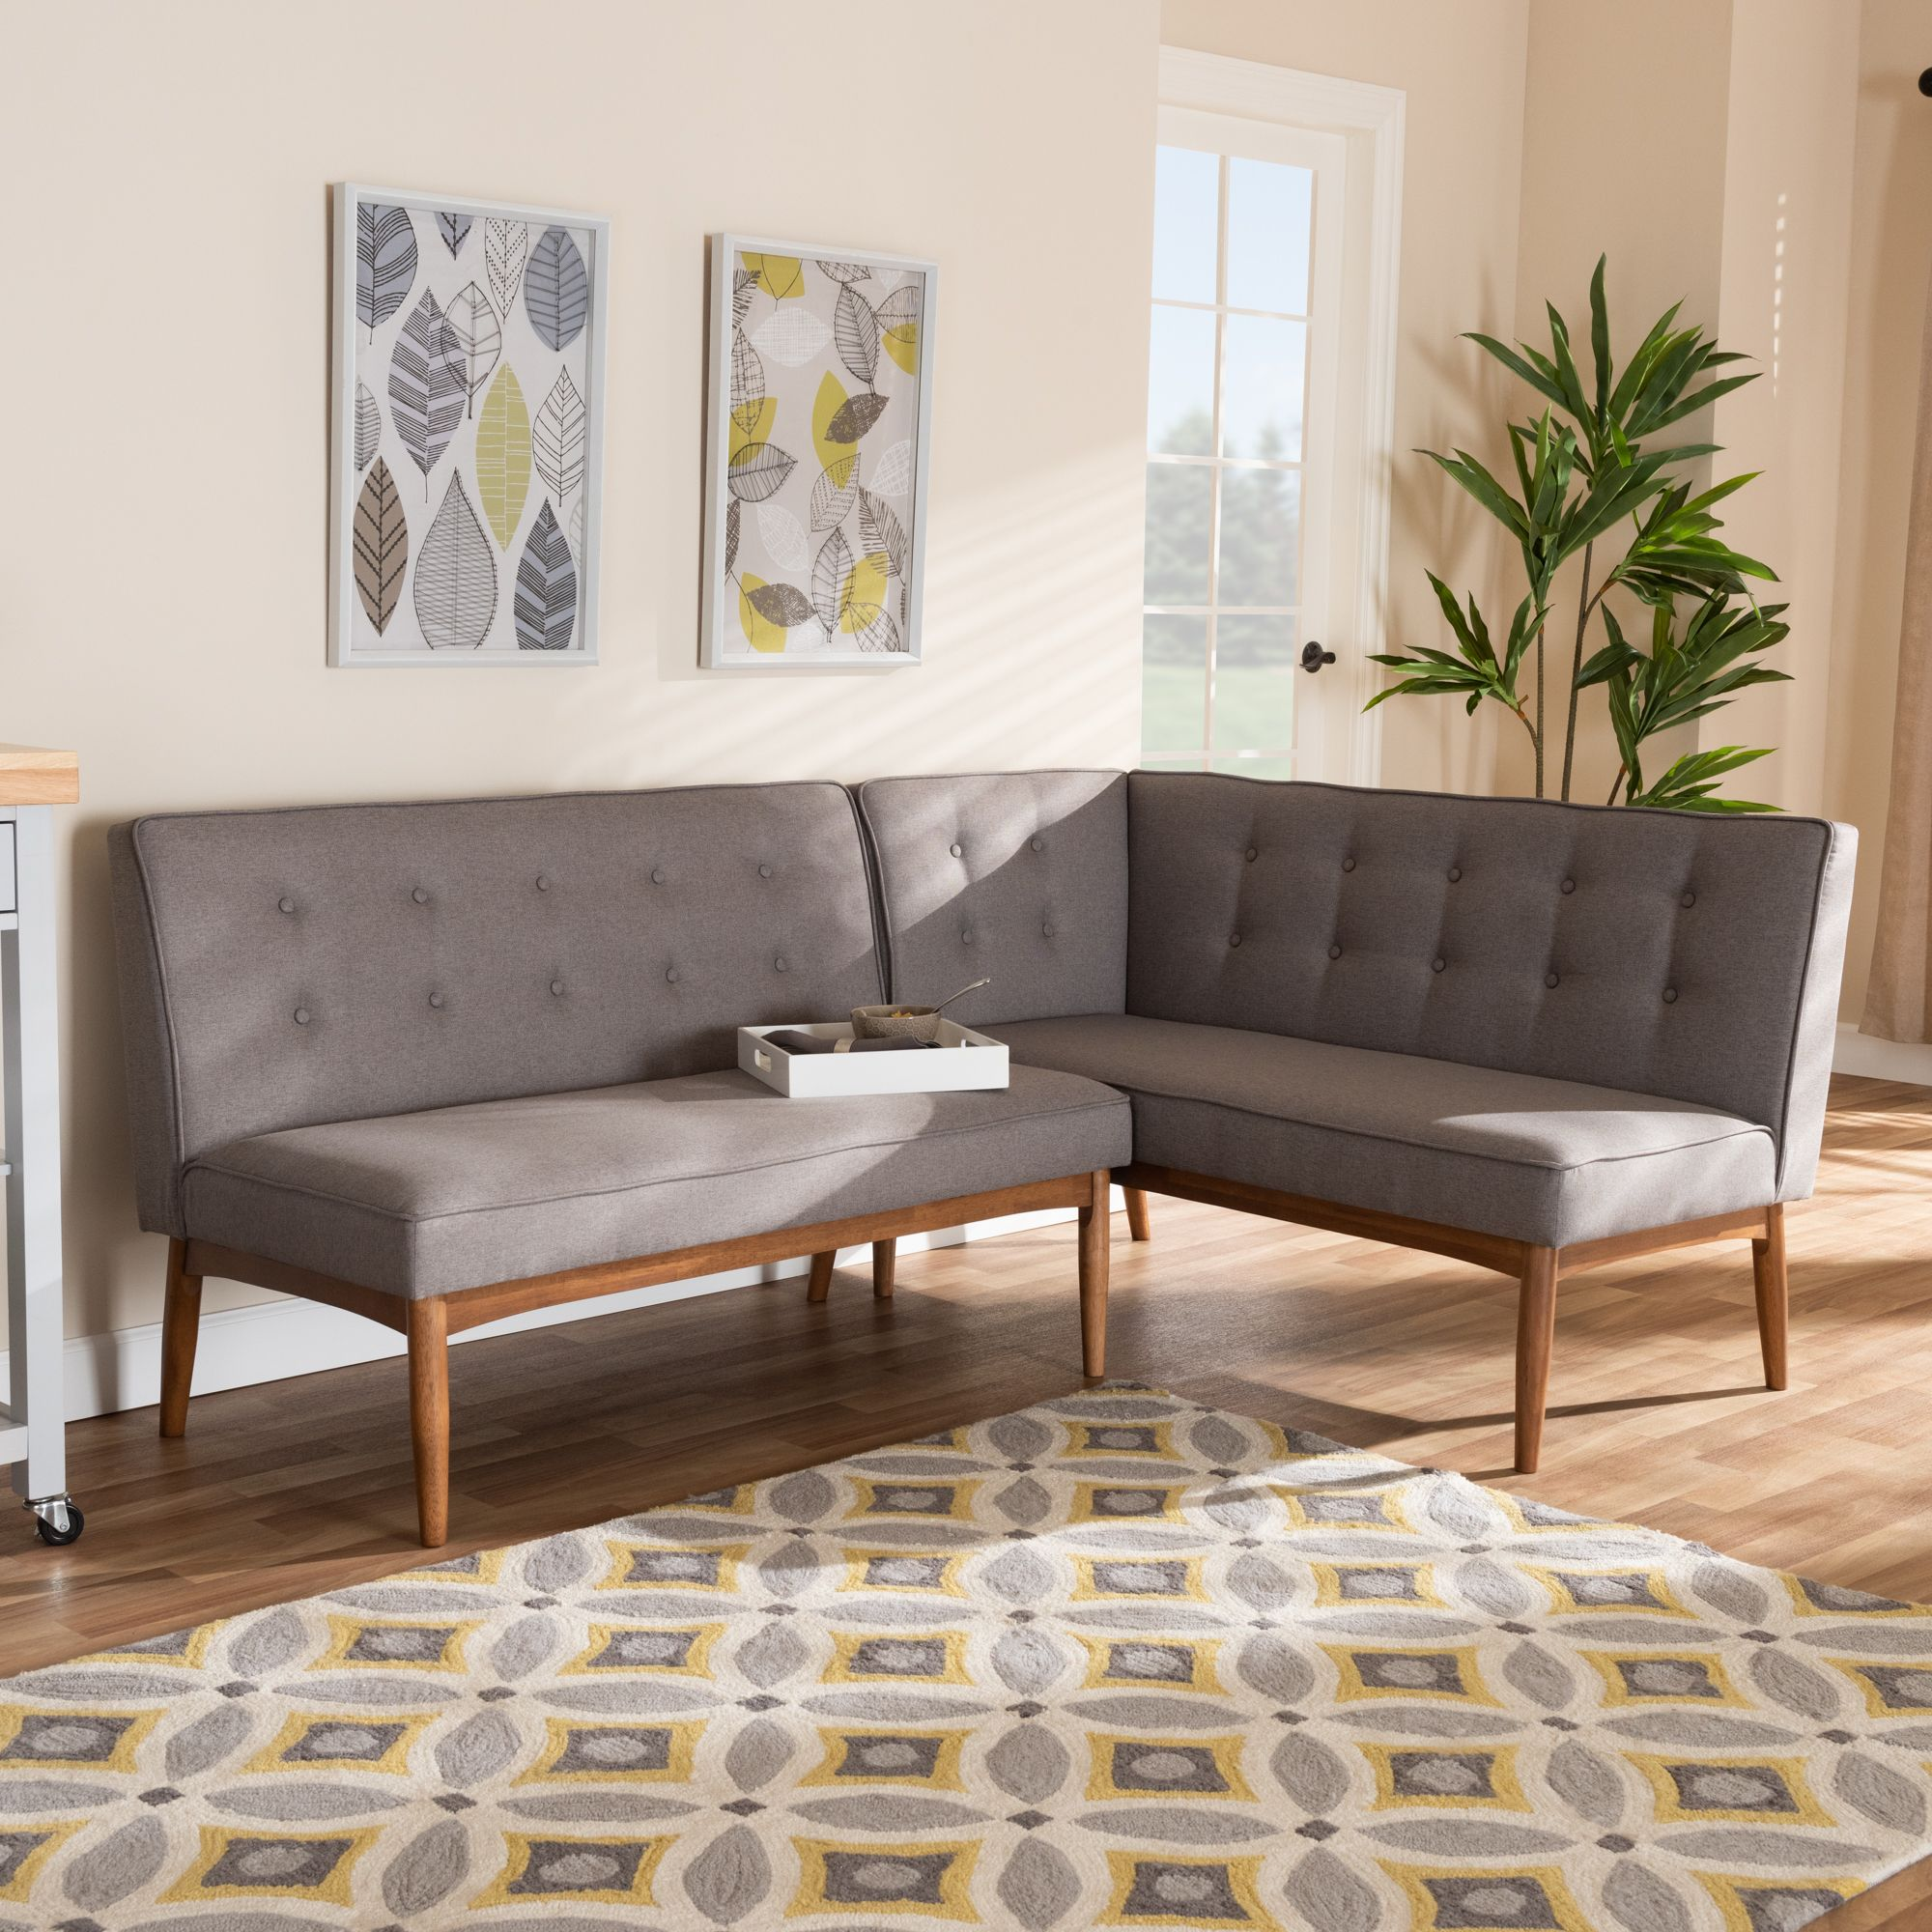 Baxton Studio Arvid Mid Century Modern Gray Fabric Upholstered 2 Piece Wood Dining Corner Sofa Bench Walmart Com Dining Sofa Nook Dining Set Dining Corner